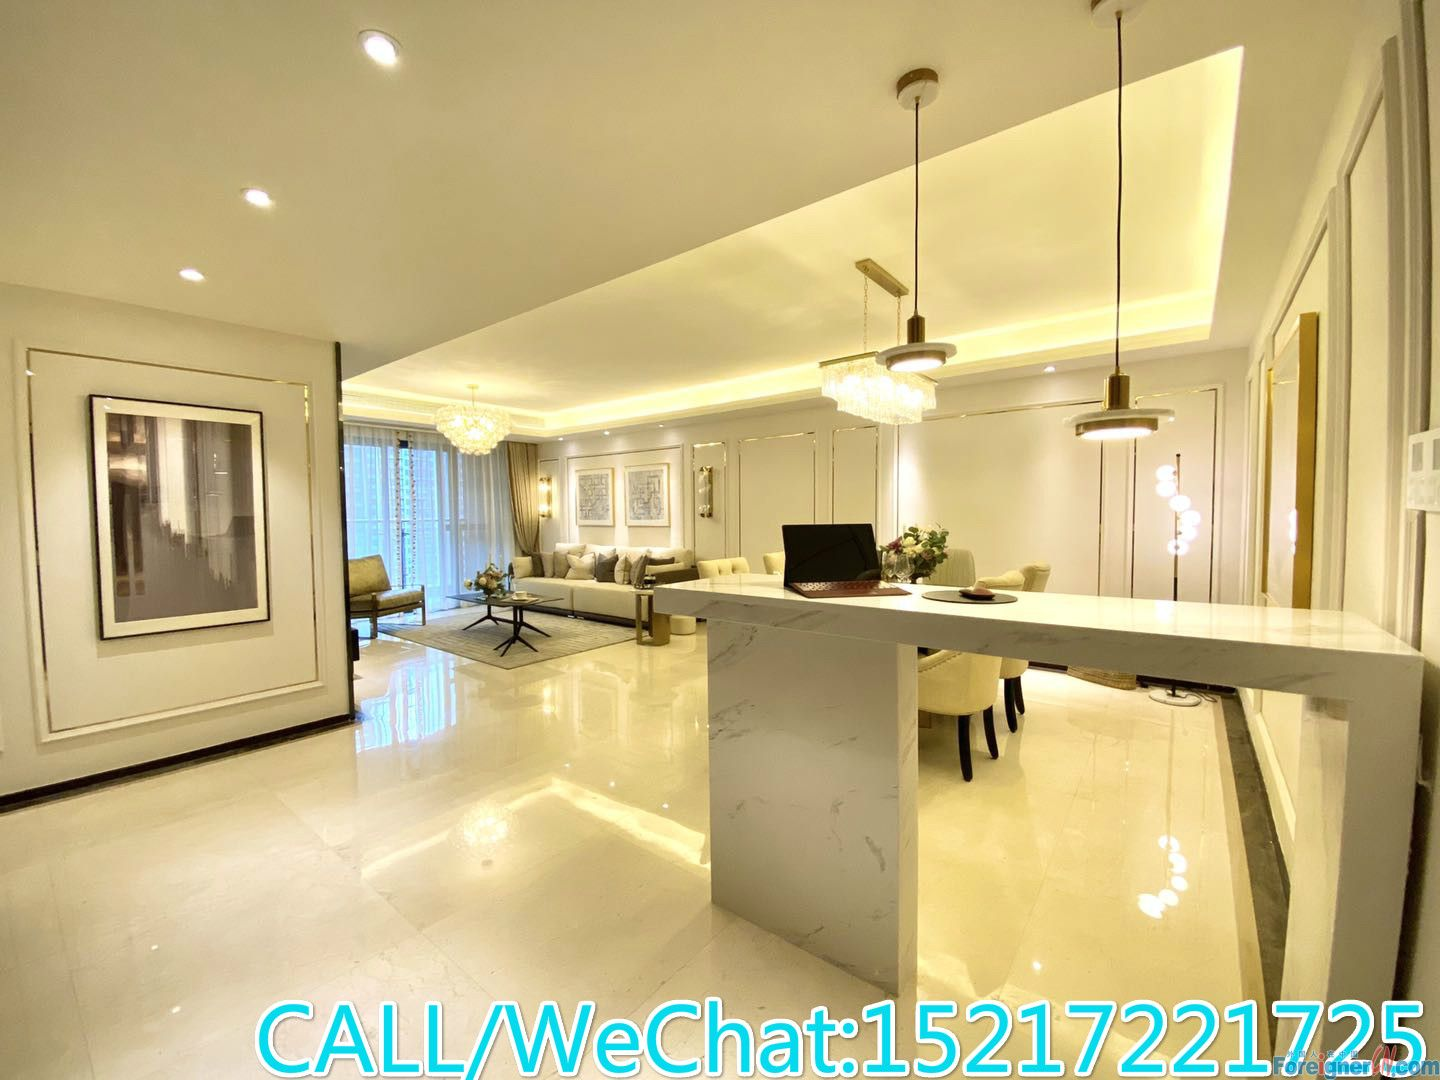 Brand New/High Quaity/Large Living Room/Good Layout/24hrs management/CBD AREA.